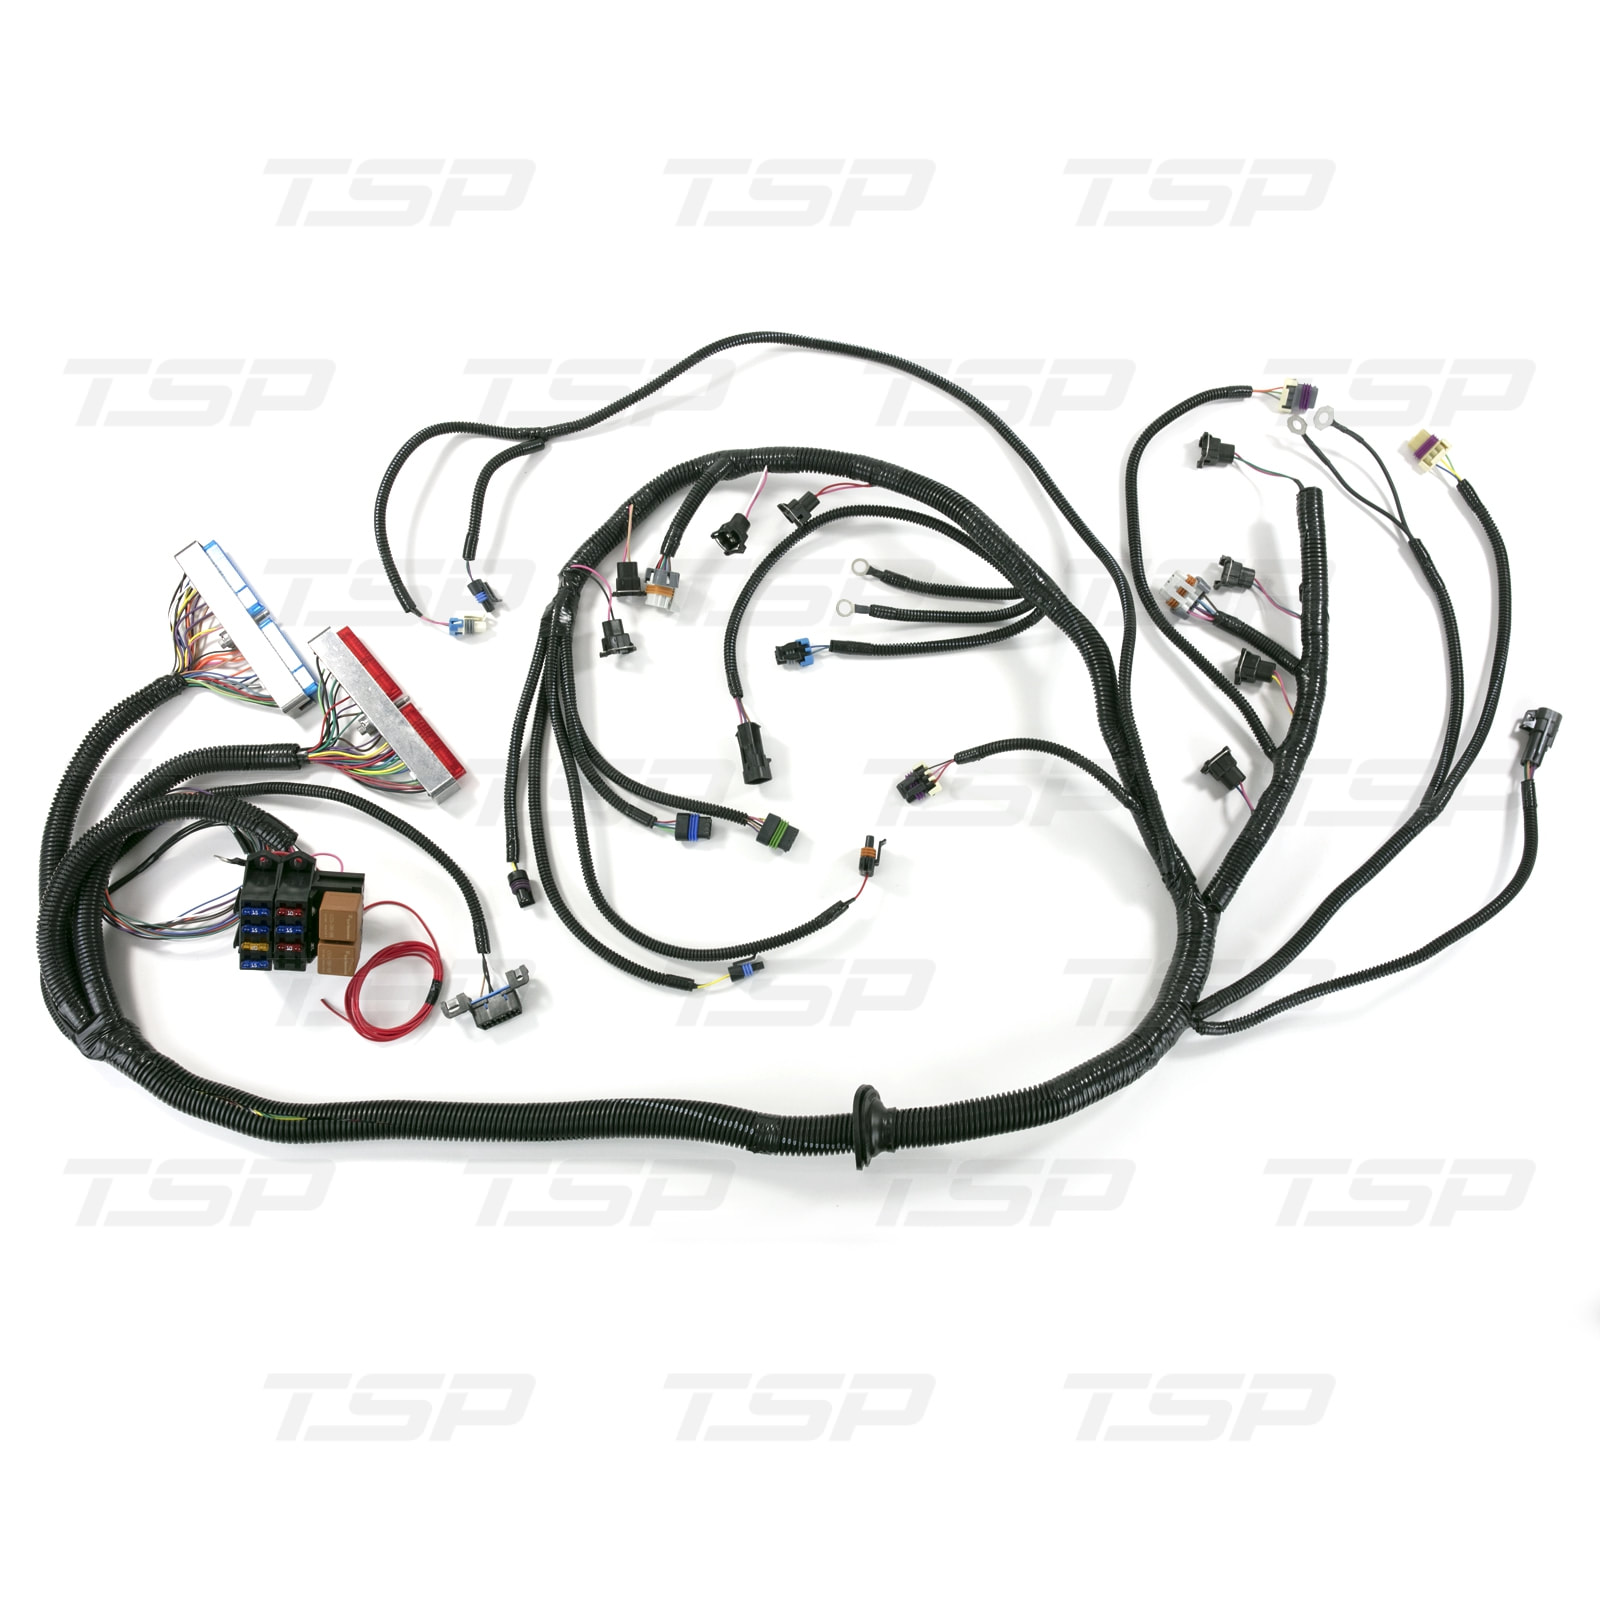 Standalone Wiring Harness For Drive By Cable Ls1 With T56